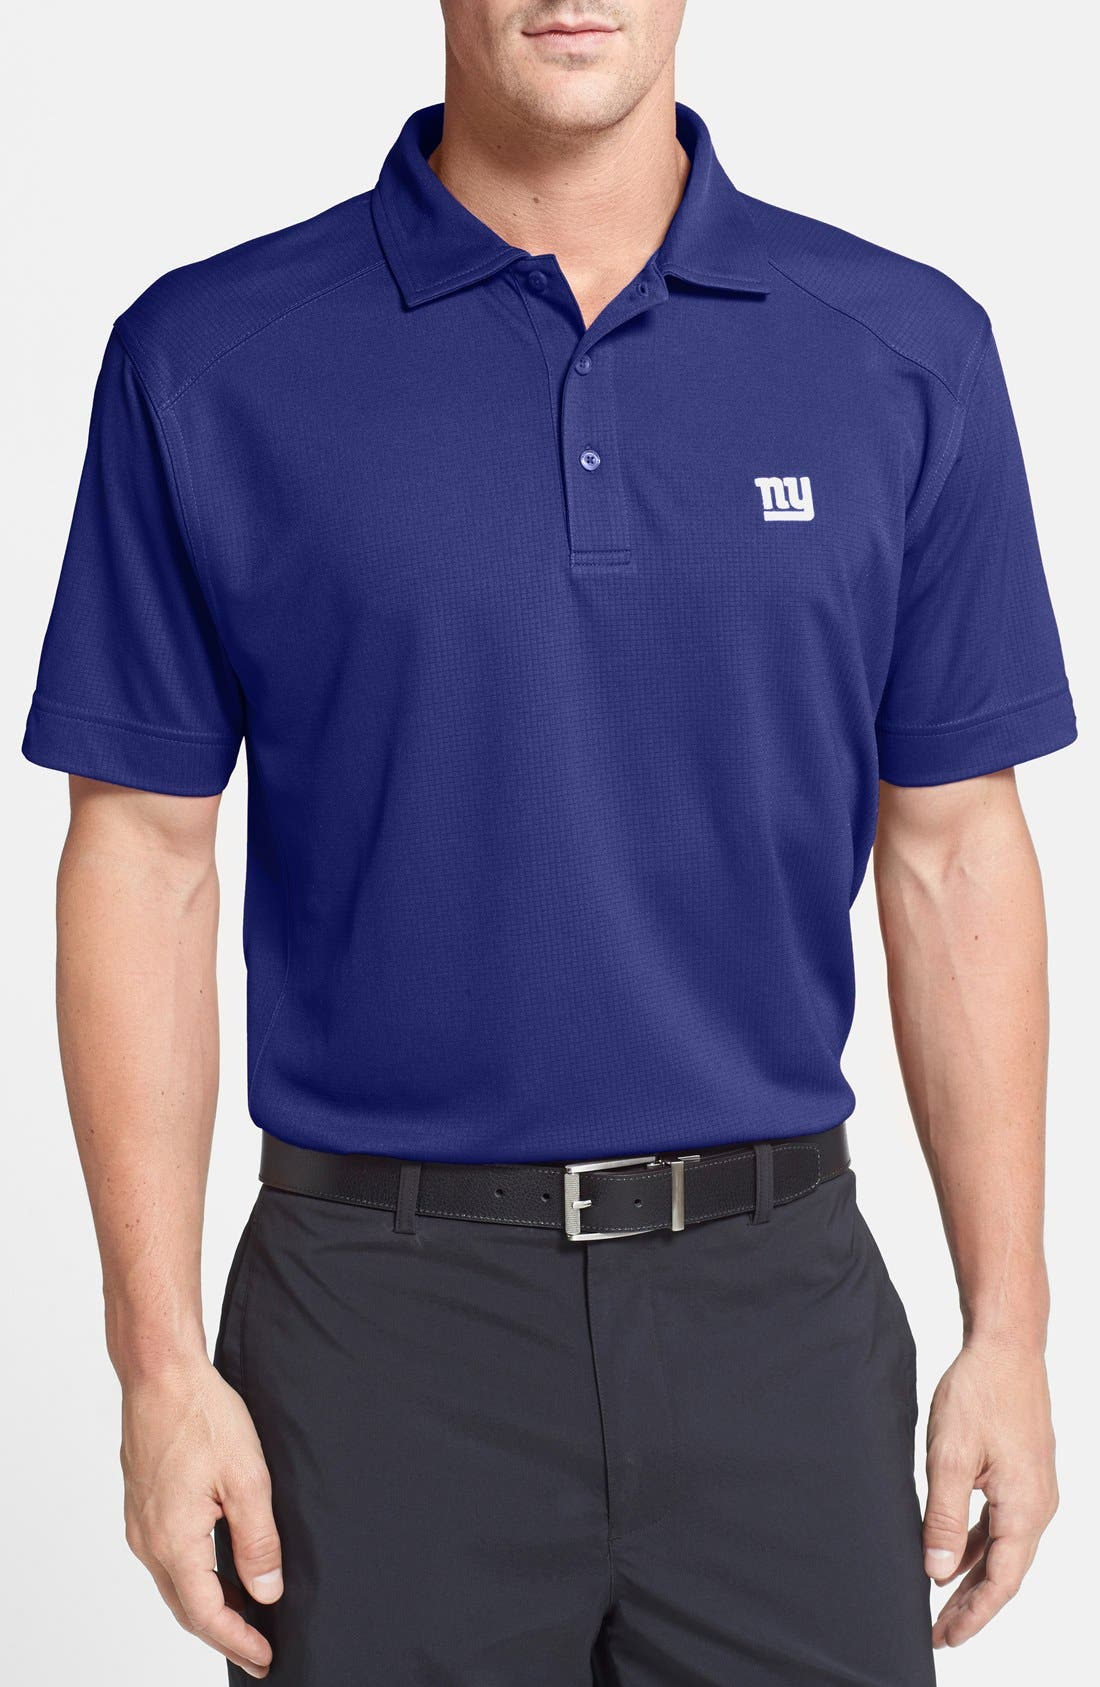 'New York Giants - Genre' DryTec Moisture Wicking Polo,                         Main,                         color, 462